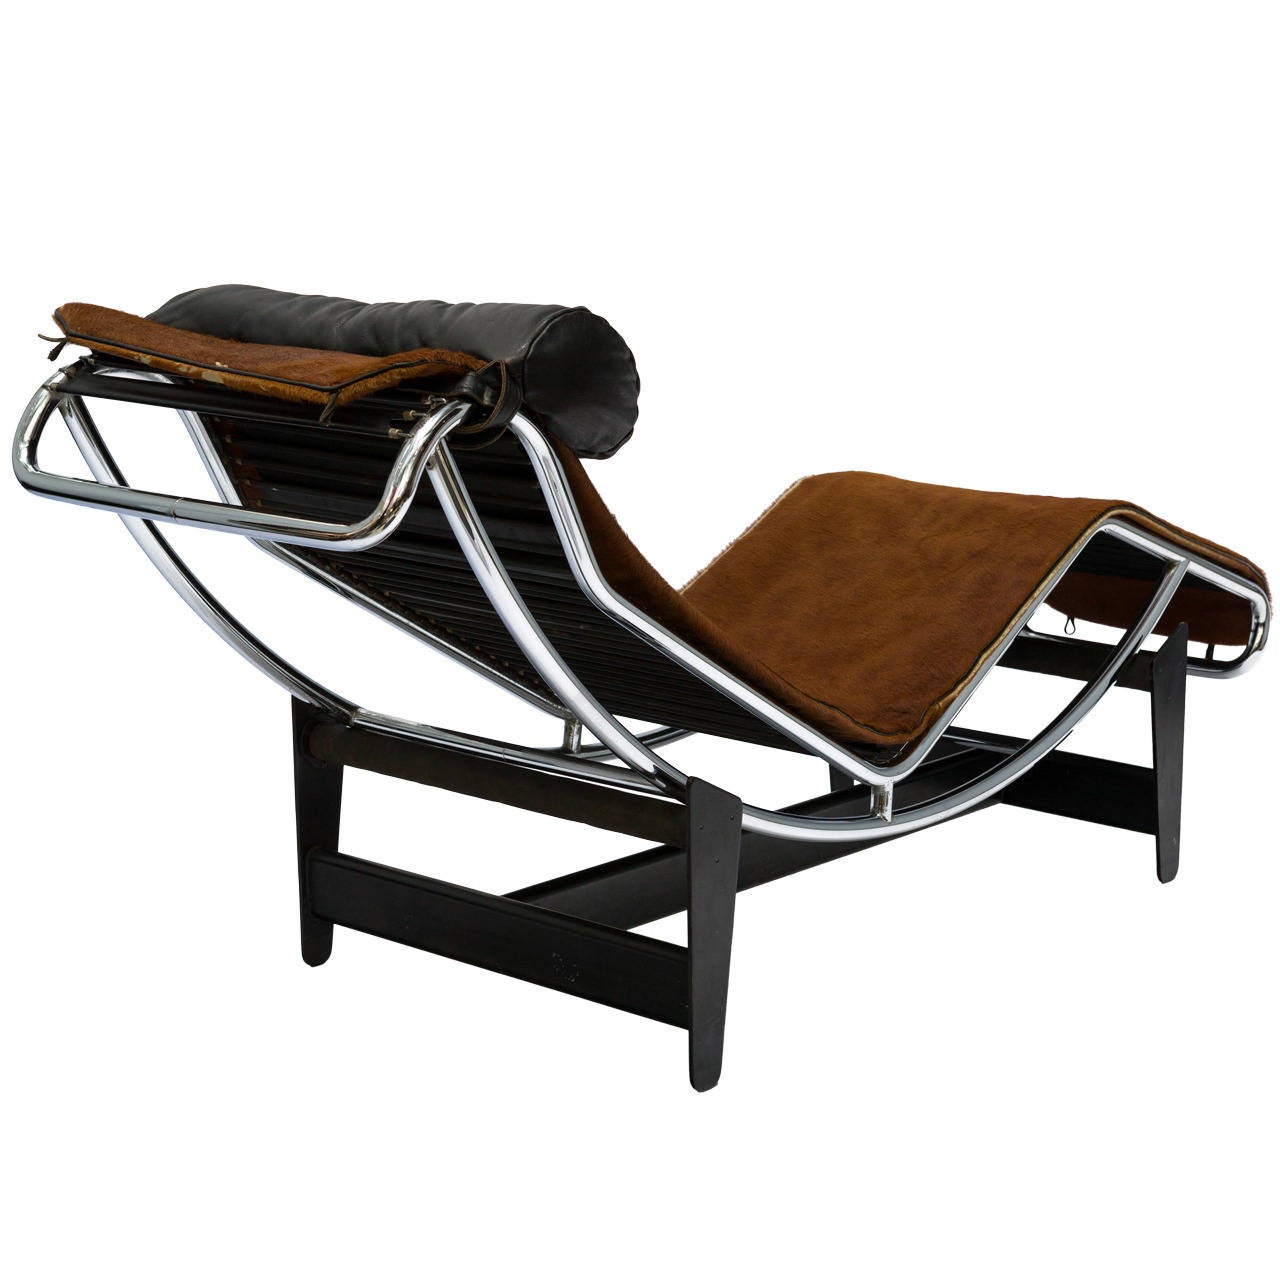 Le corbusier lc4 chaise lounge chair in cowhide for sale for Chaise longue lounge